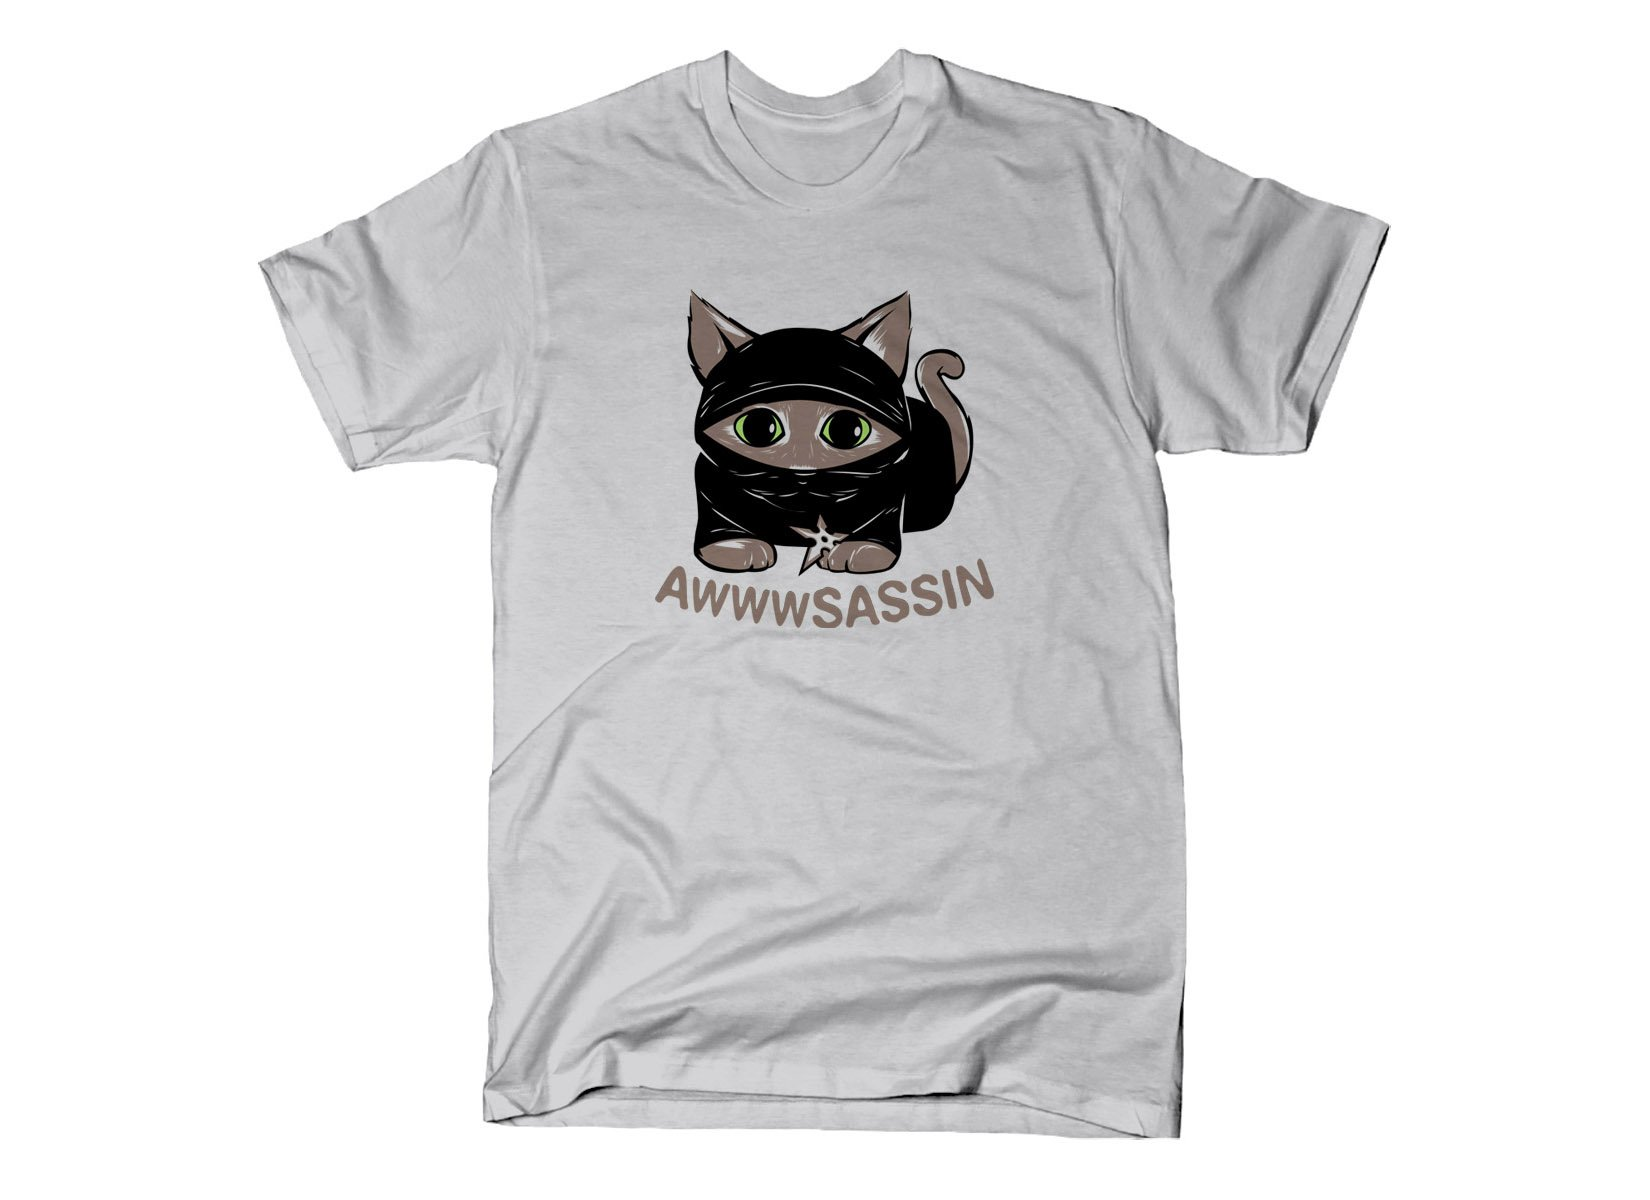 Awwwsassin on Mens T-Shirt